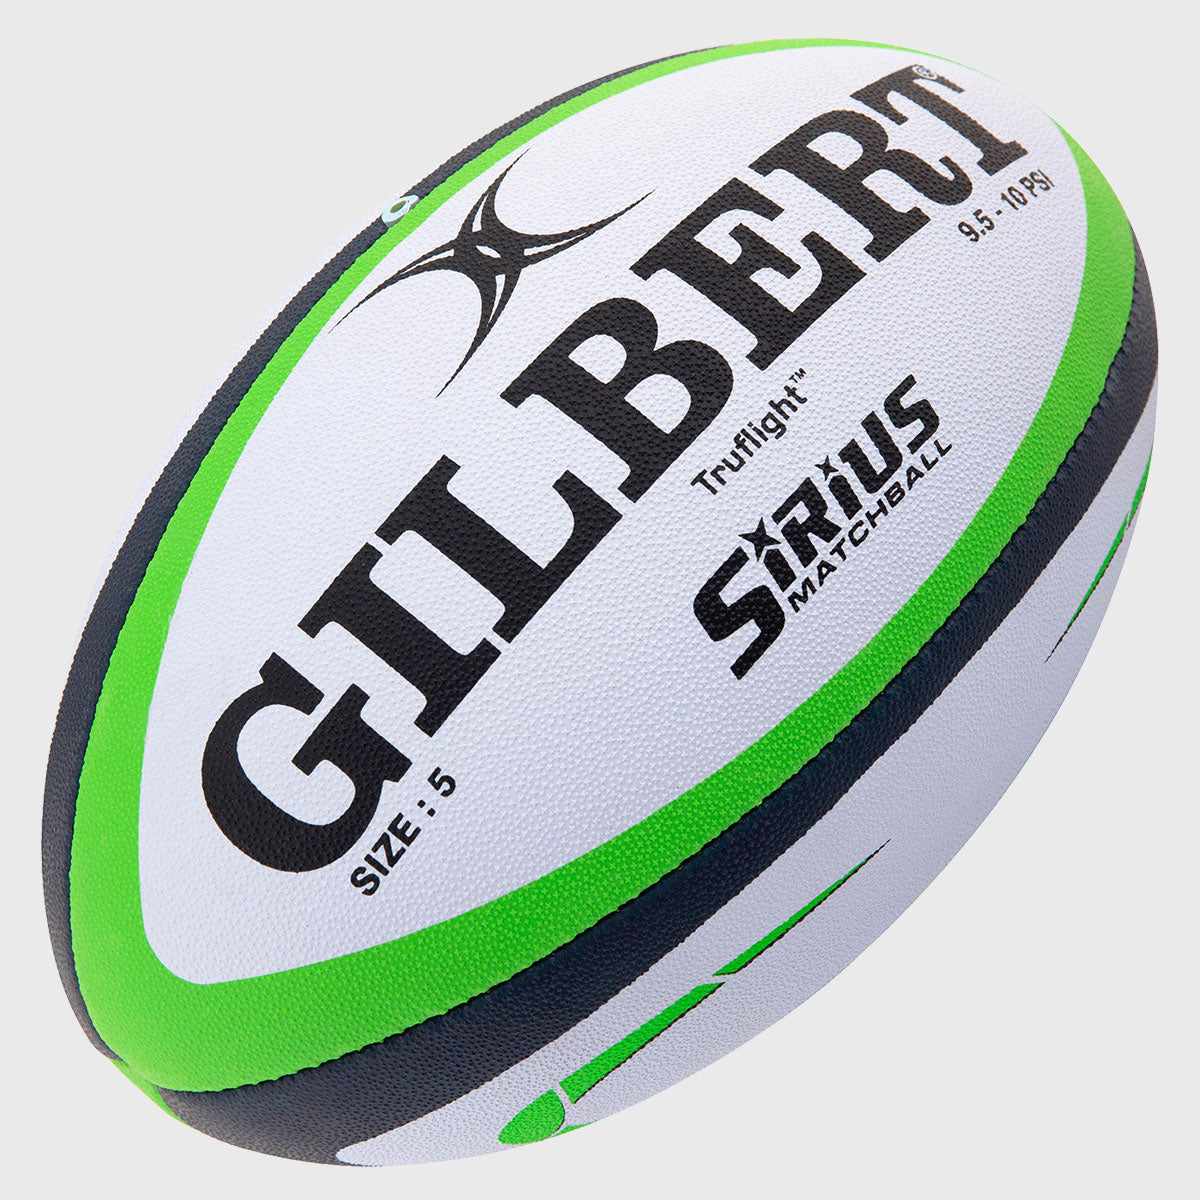 Sirius Rugby Match Ball - First XV rugbystuff.com